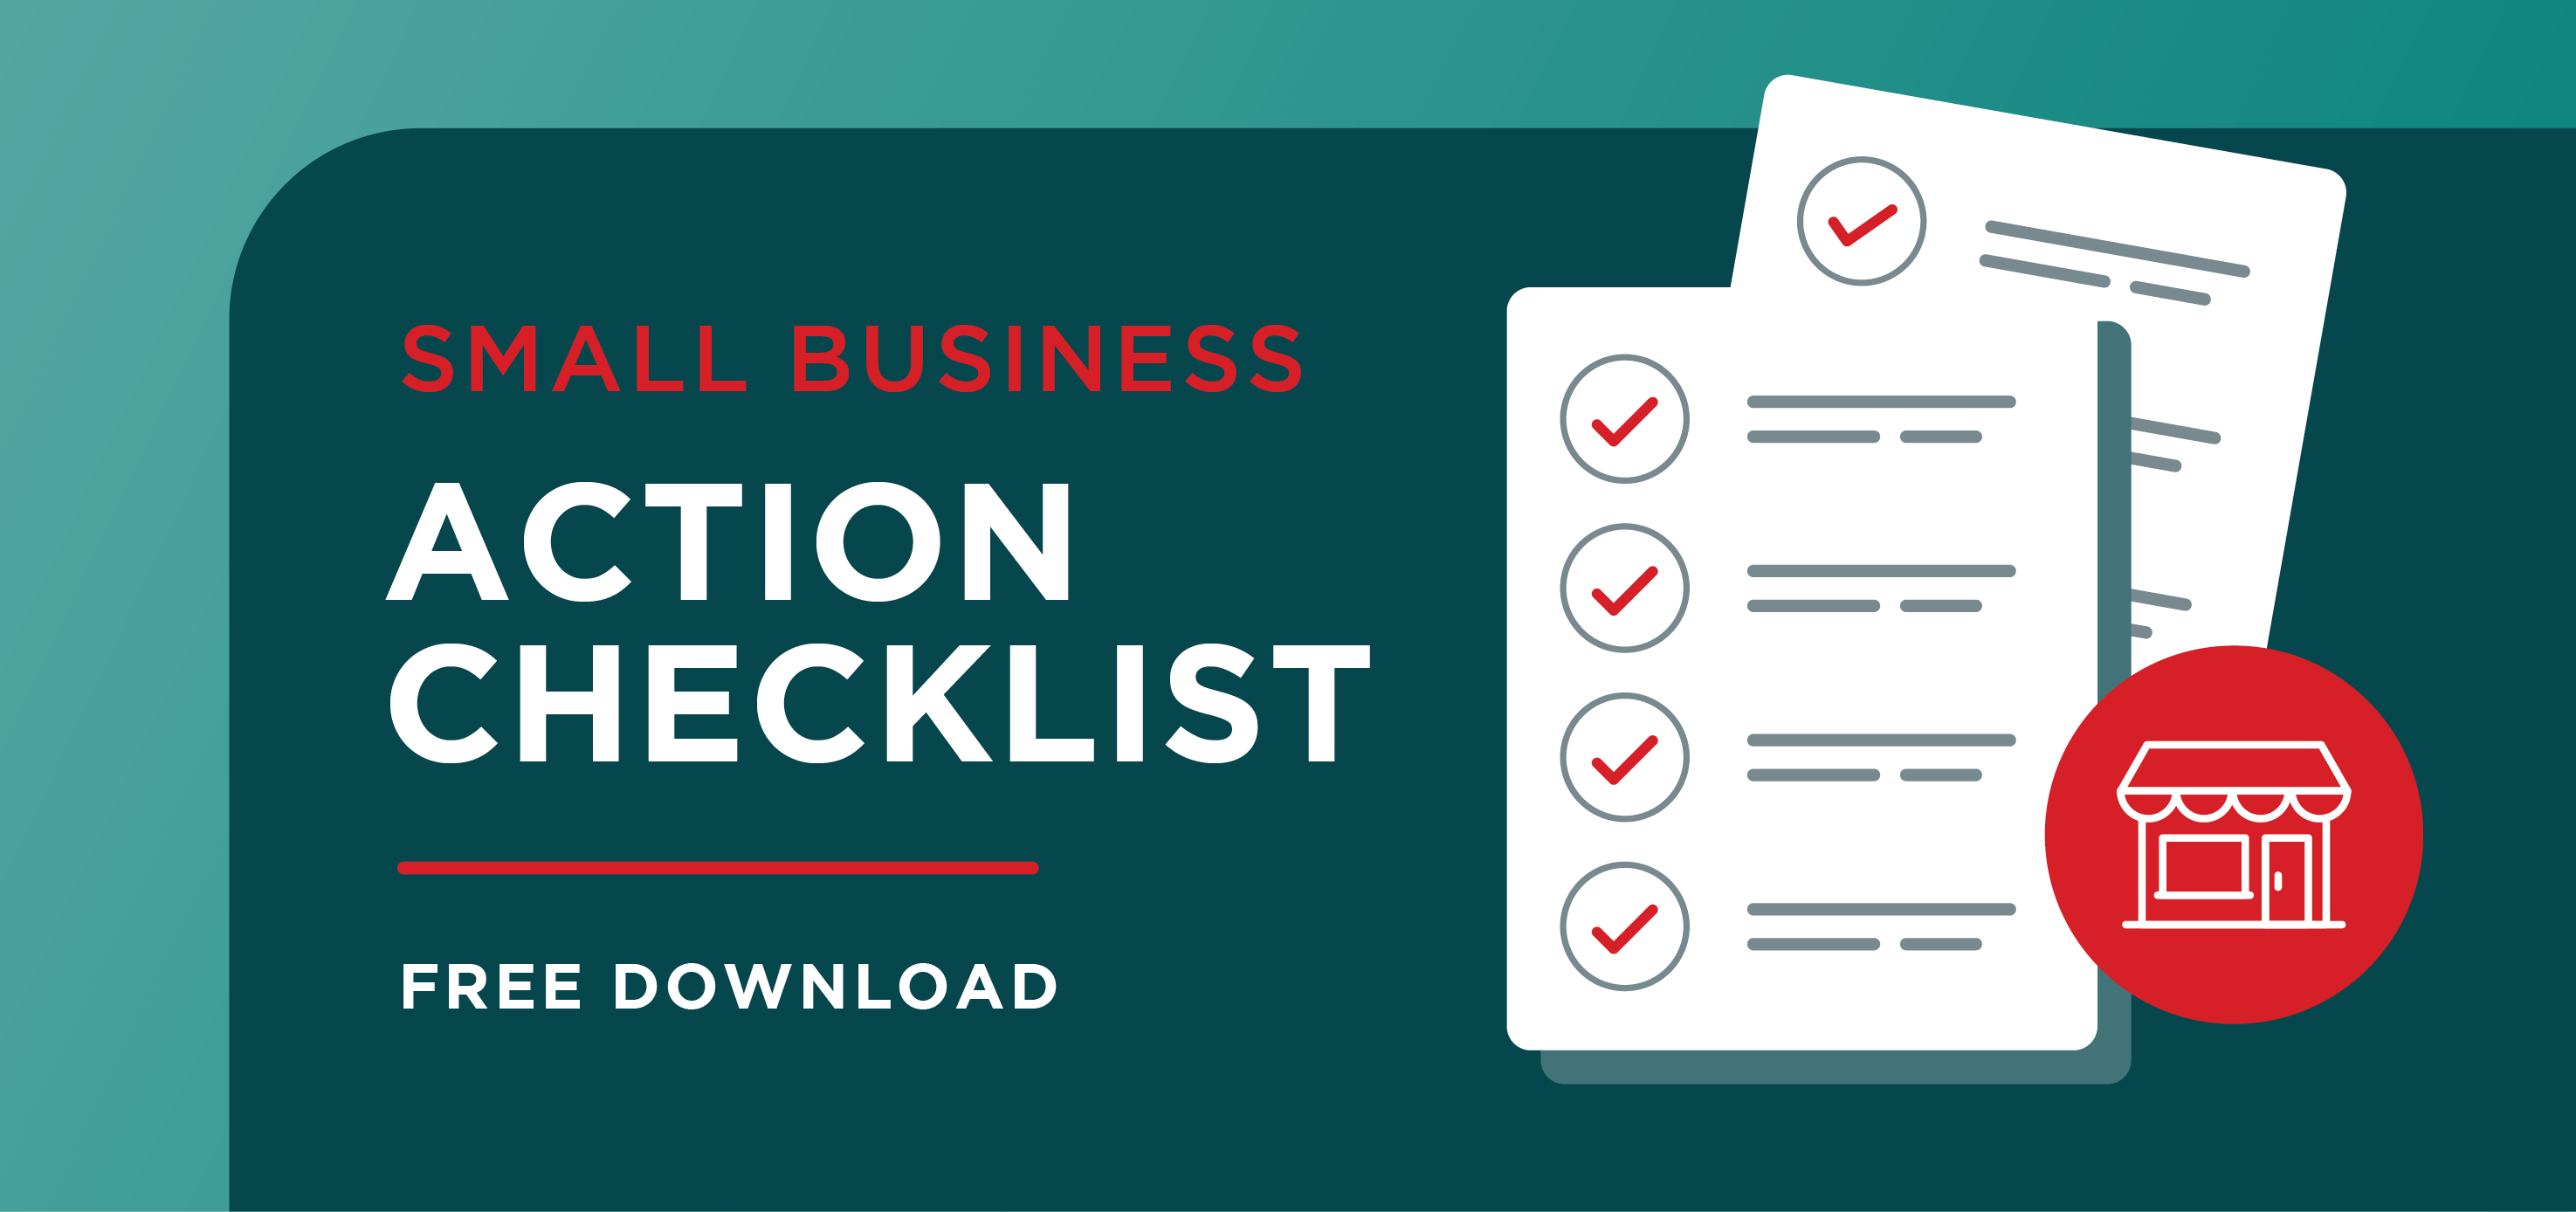 CP_COVID_Small_Business_Checklist_Secondary_Blog_708x333.png